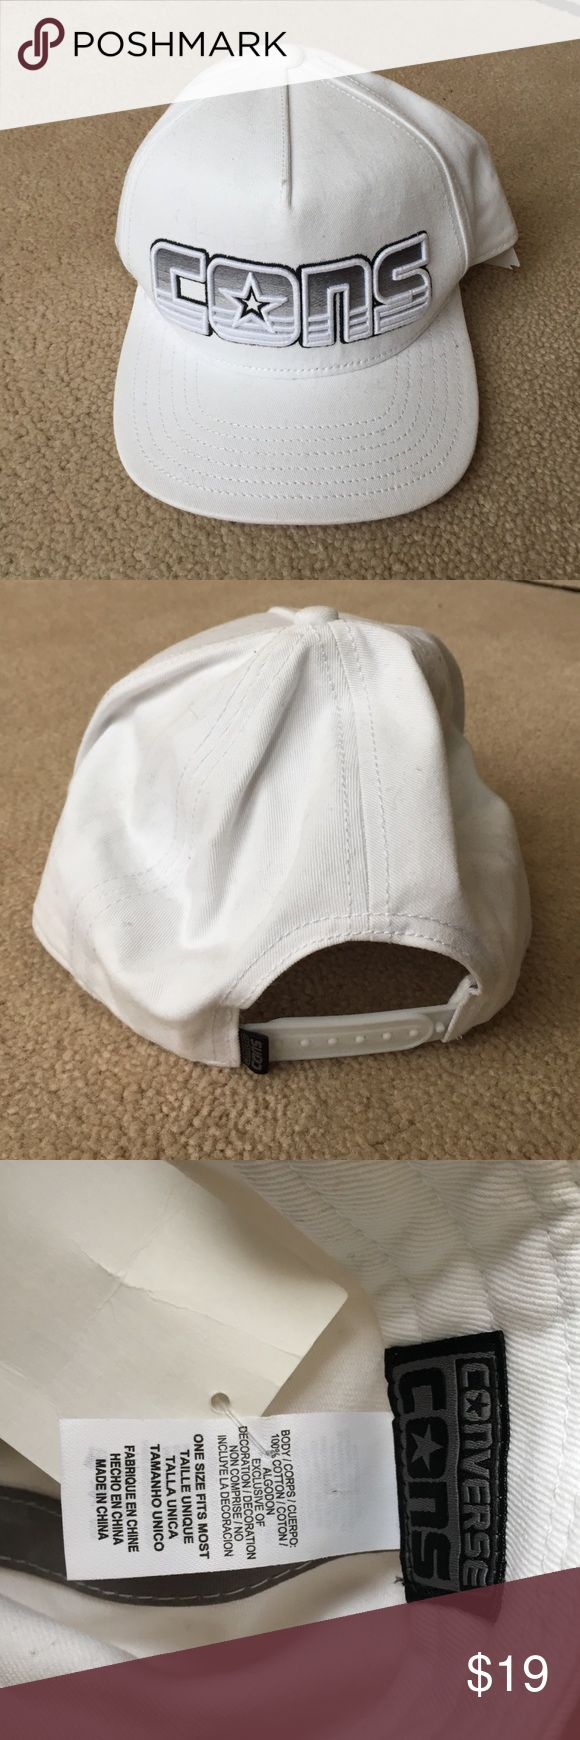 NWT Converse classic hat snapback white NWT Converse classic hat snapback white Converse Accessories Hats